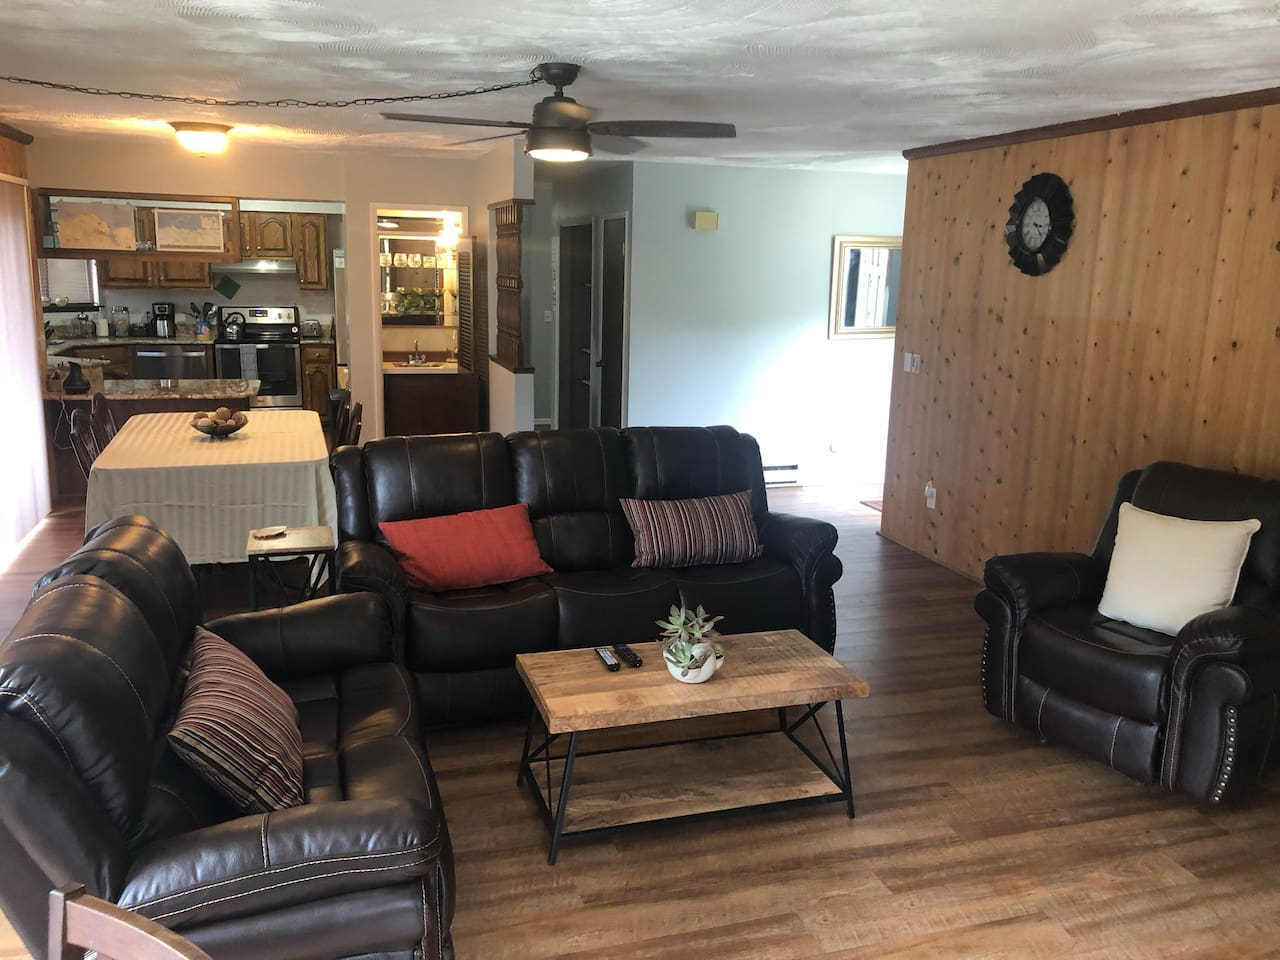 The living room has a new reclining leather sofa set and luxurious wood floors and walls.